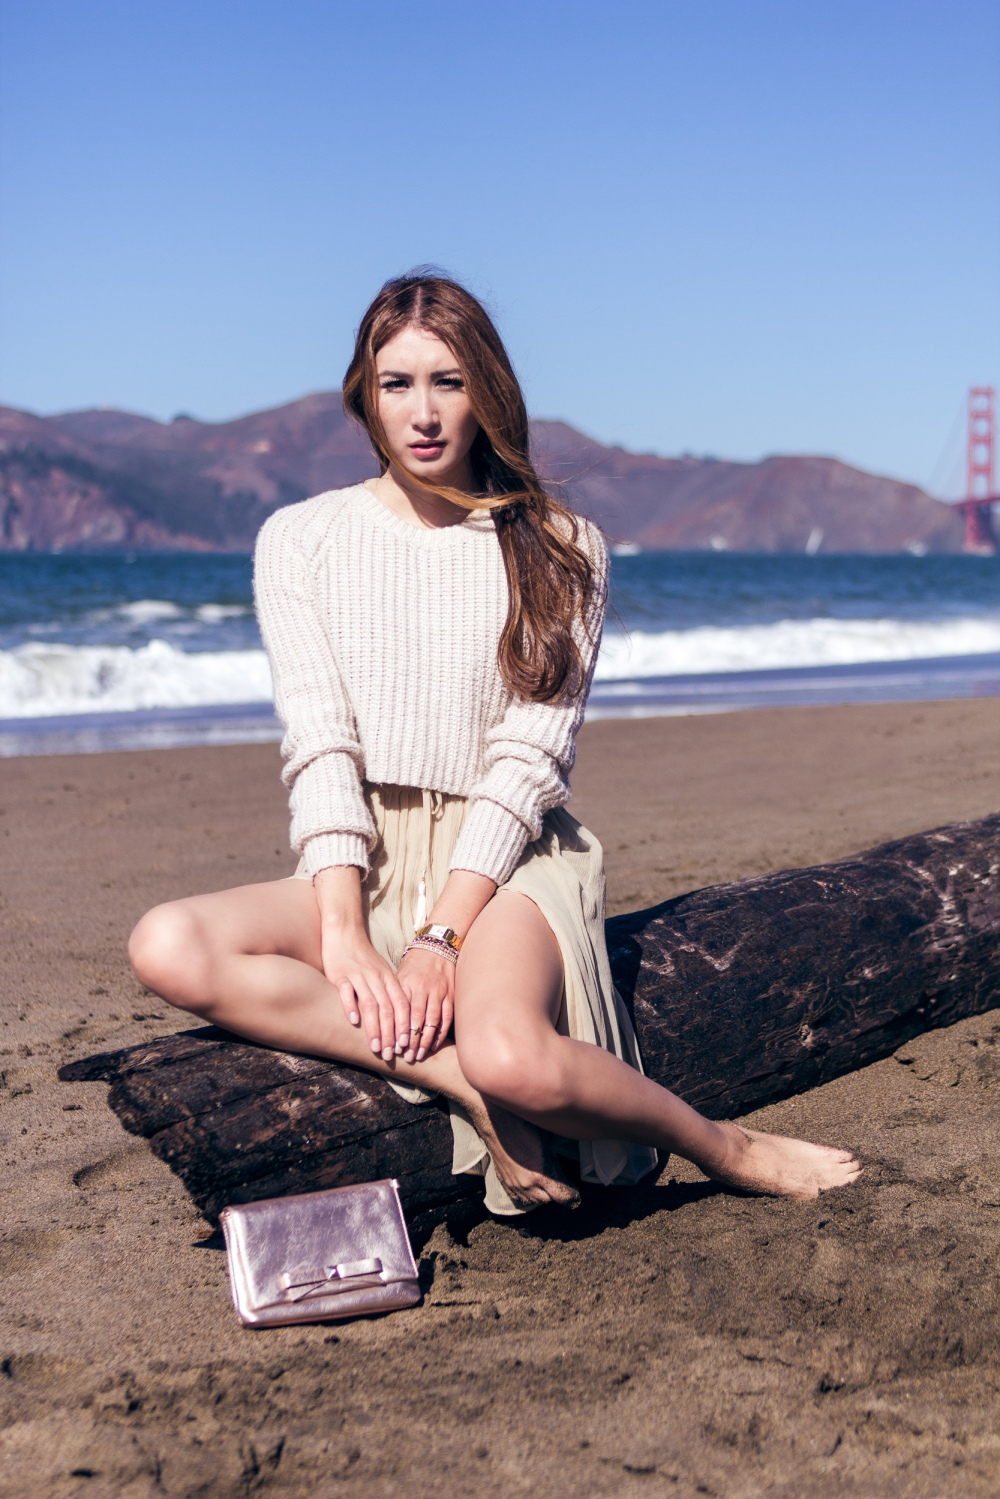 Sweater Weather Alyssa Nicole Dress Golden Gate Bridge 3